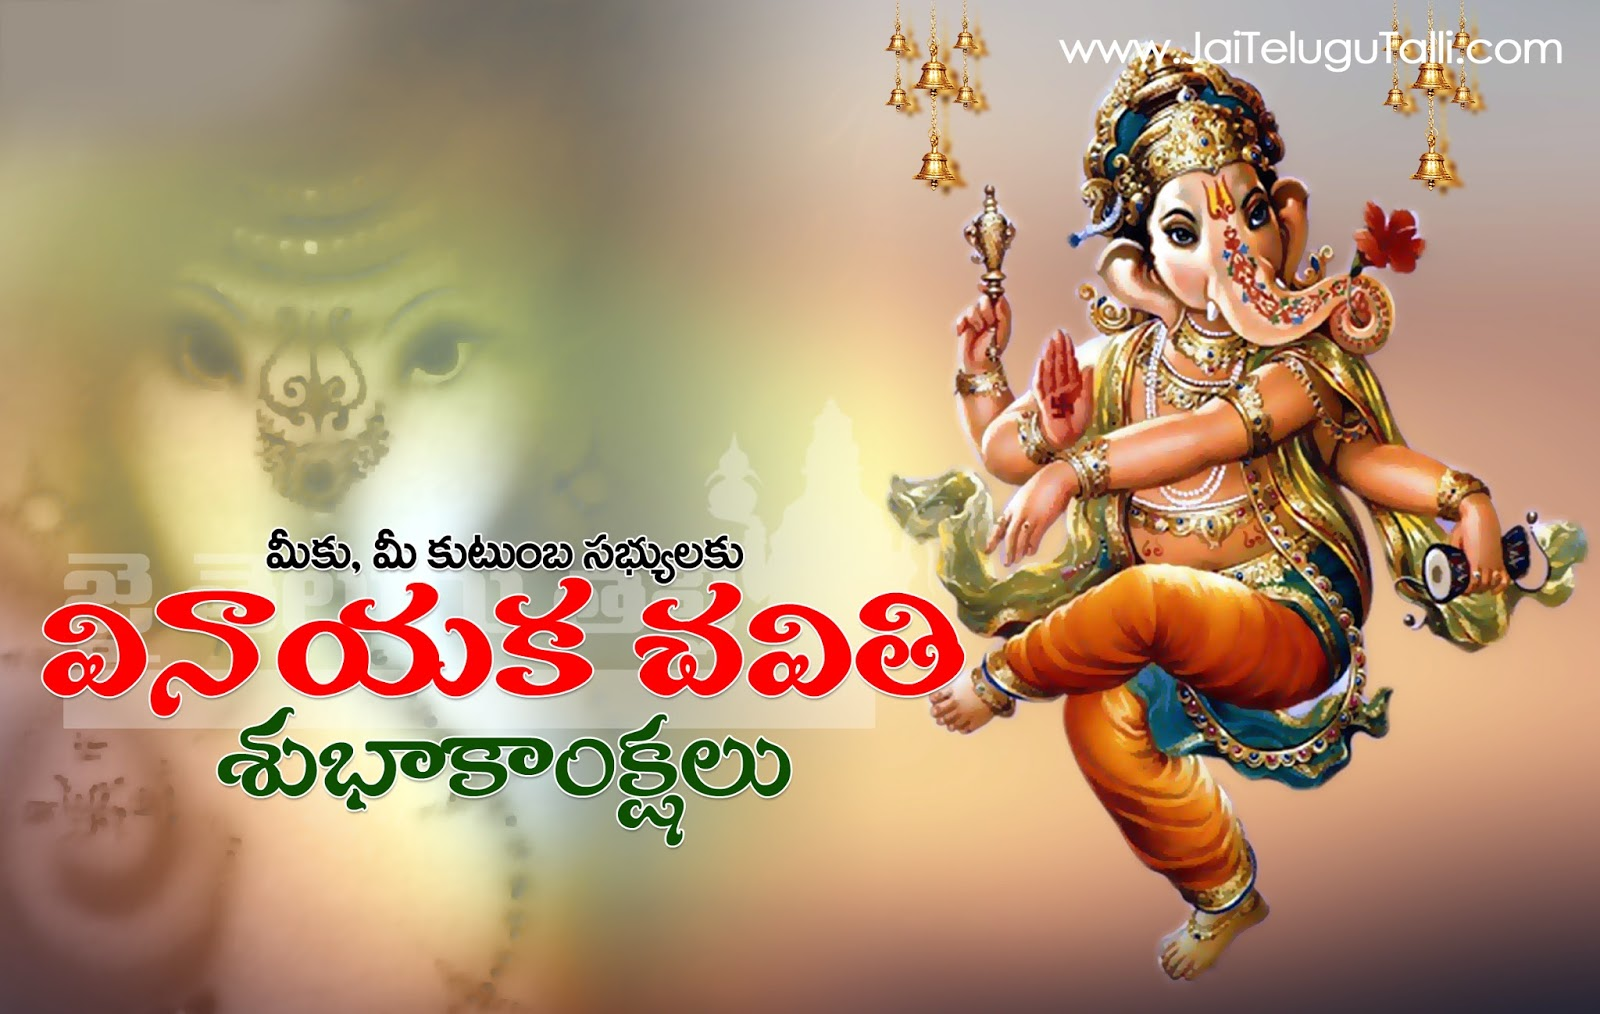 Happy vinayaka chavithi images and quotations in telugu www ganesh chaturthi telugu quotes and good messages wishes sms wallpapers ganesh chaturthi wisheslord ganesh m4hsunfo